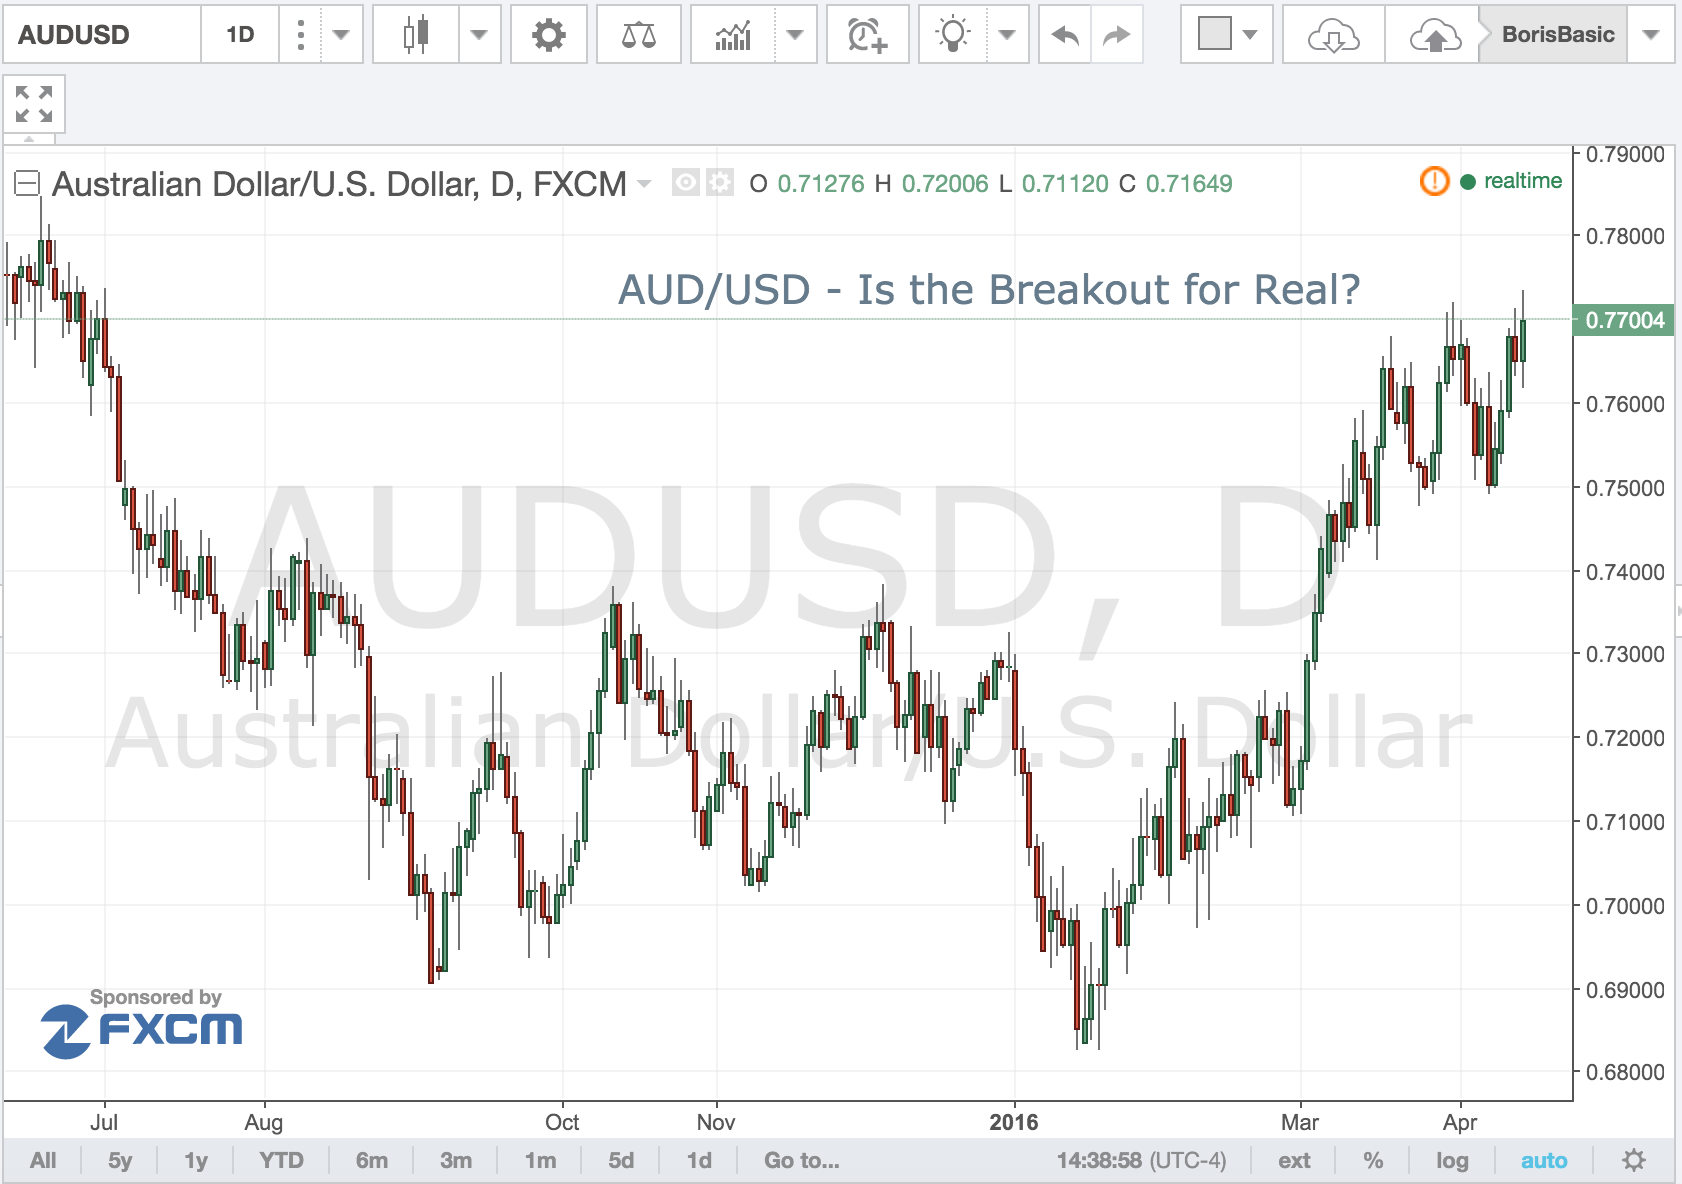 AUD/USD – Is the Breakout For Real?